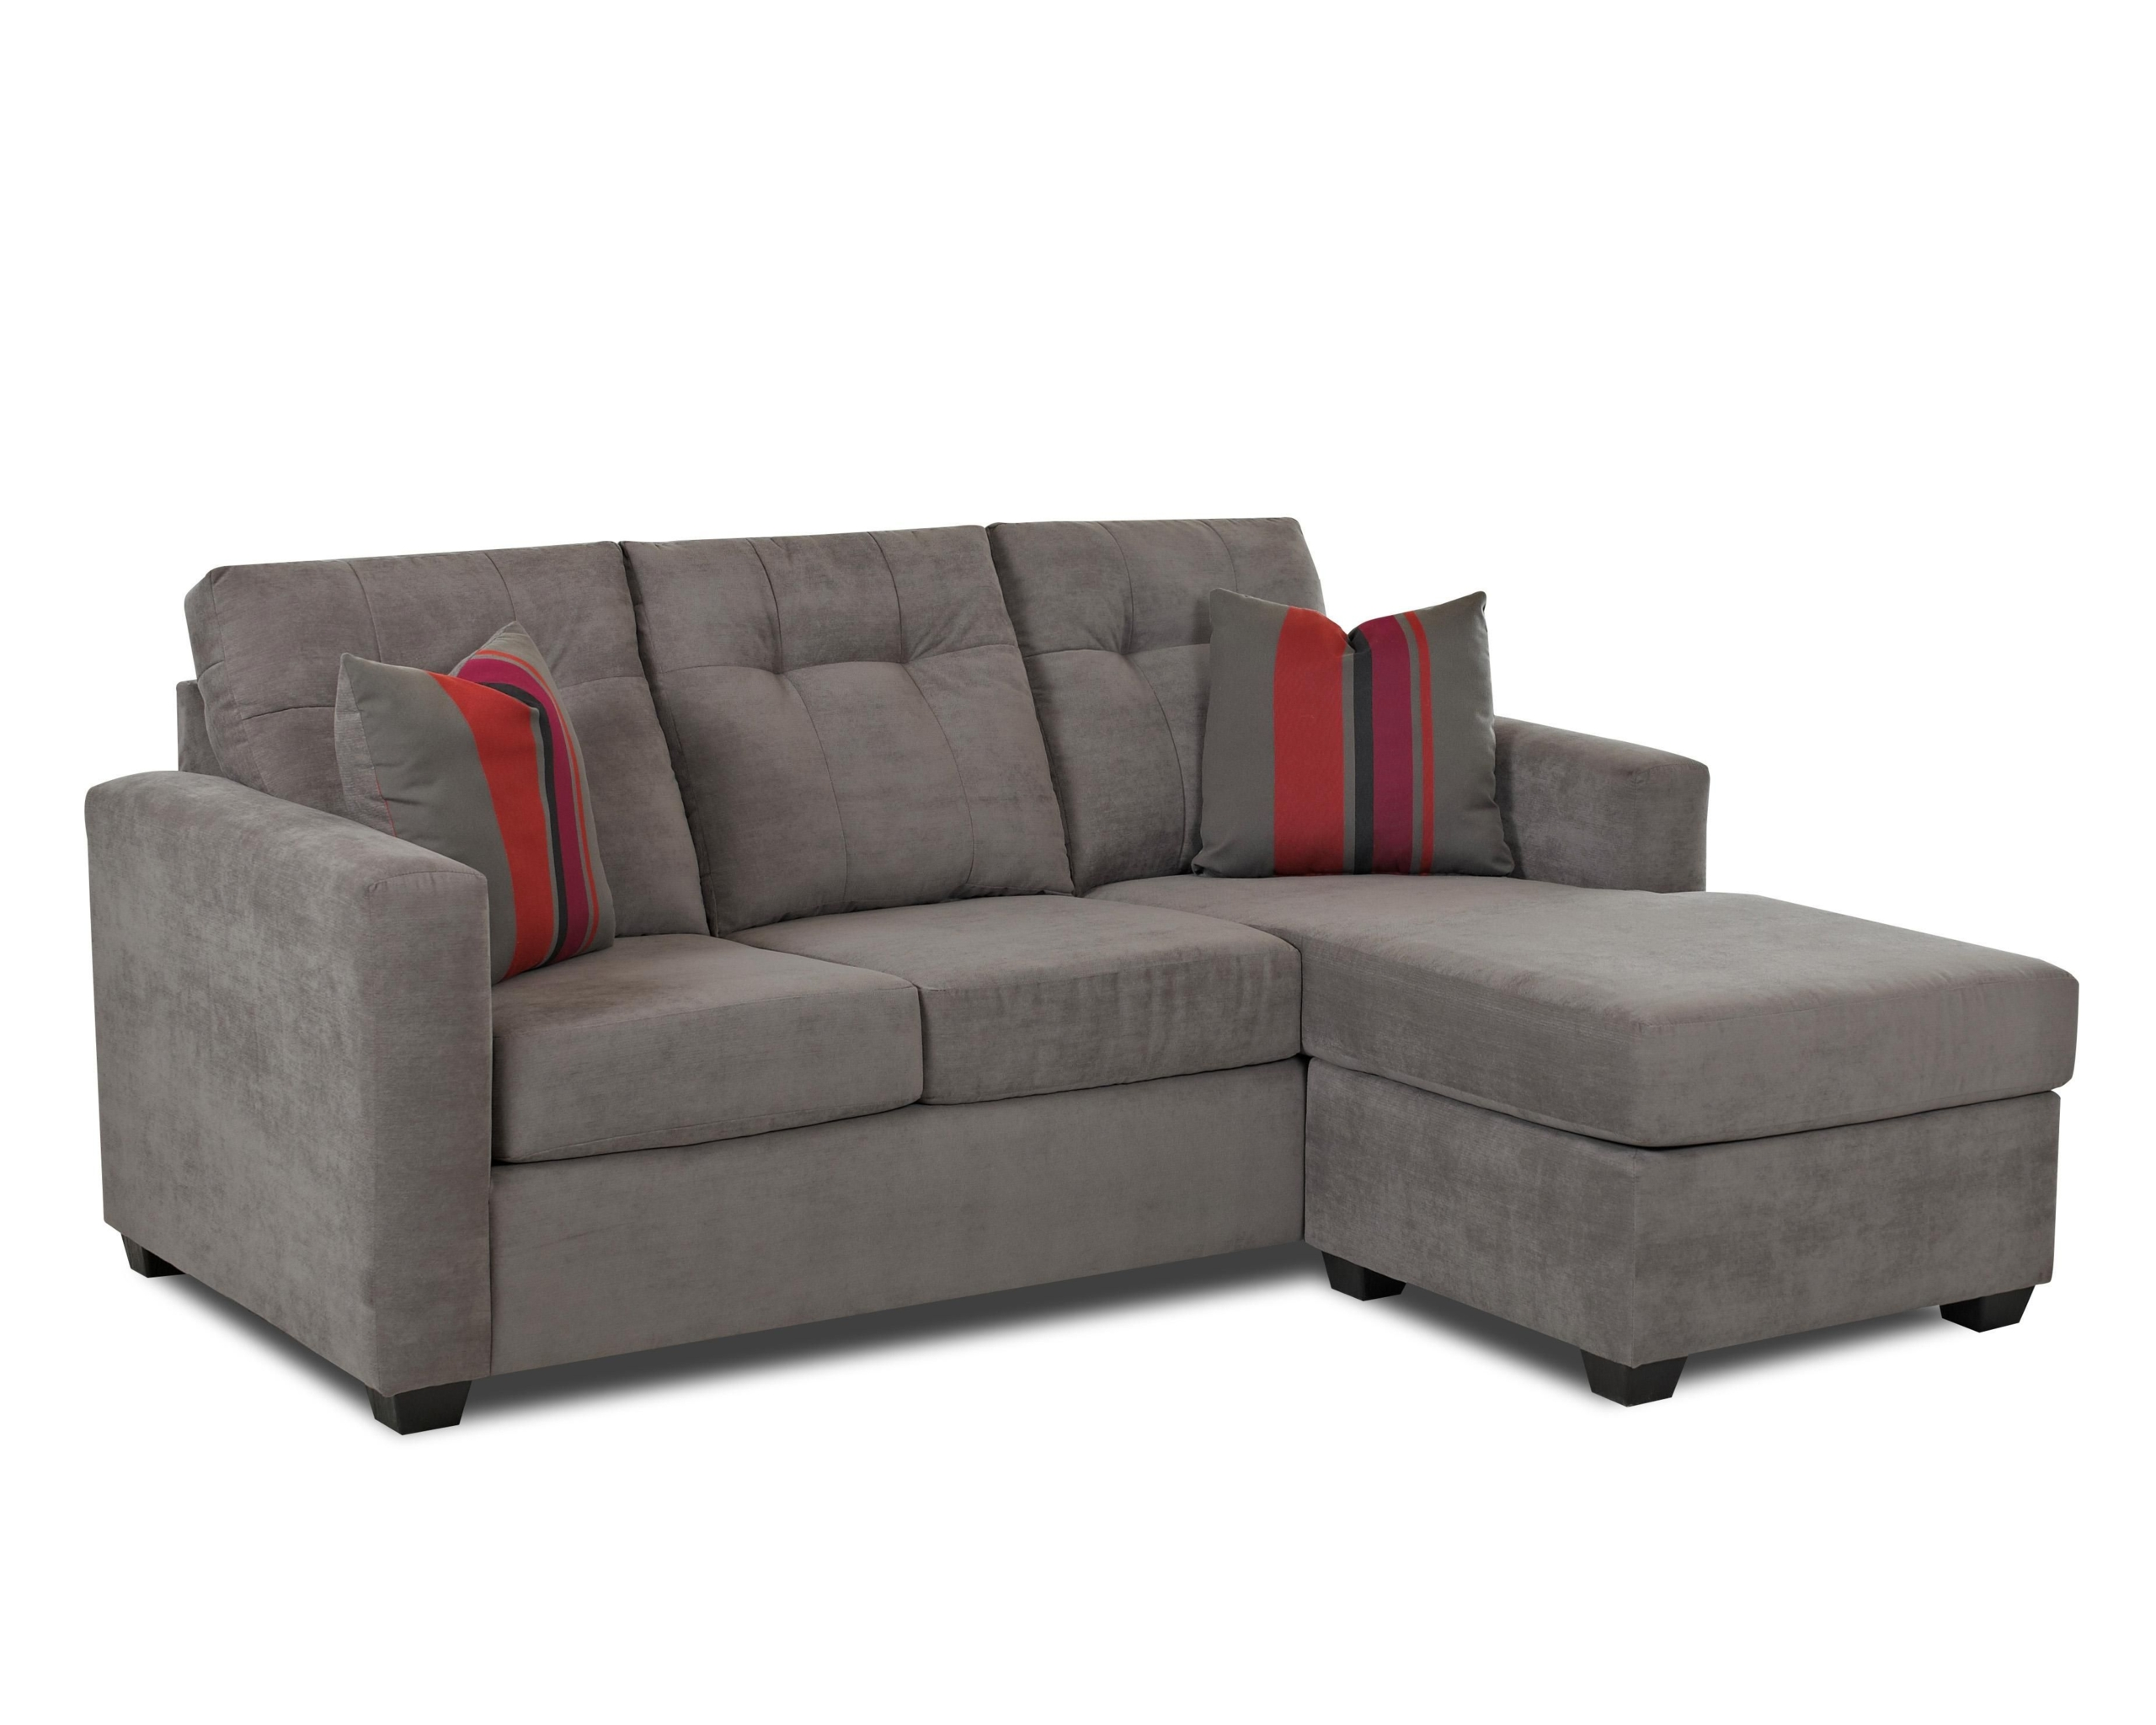 Exceptional Mini Sectional Sofas 2